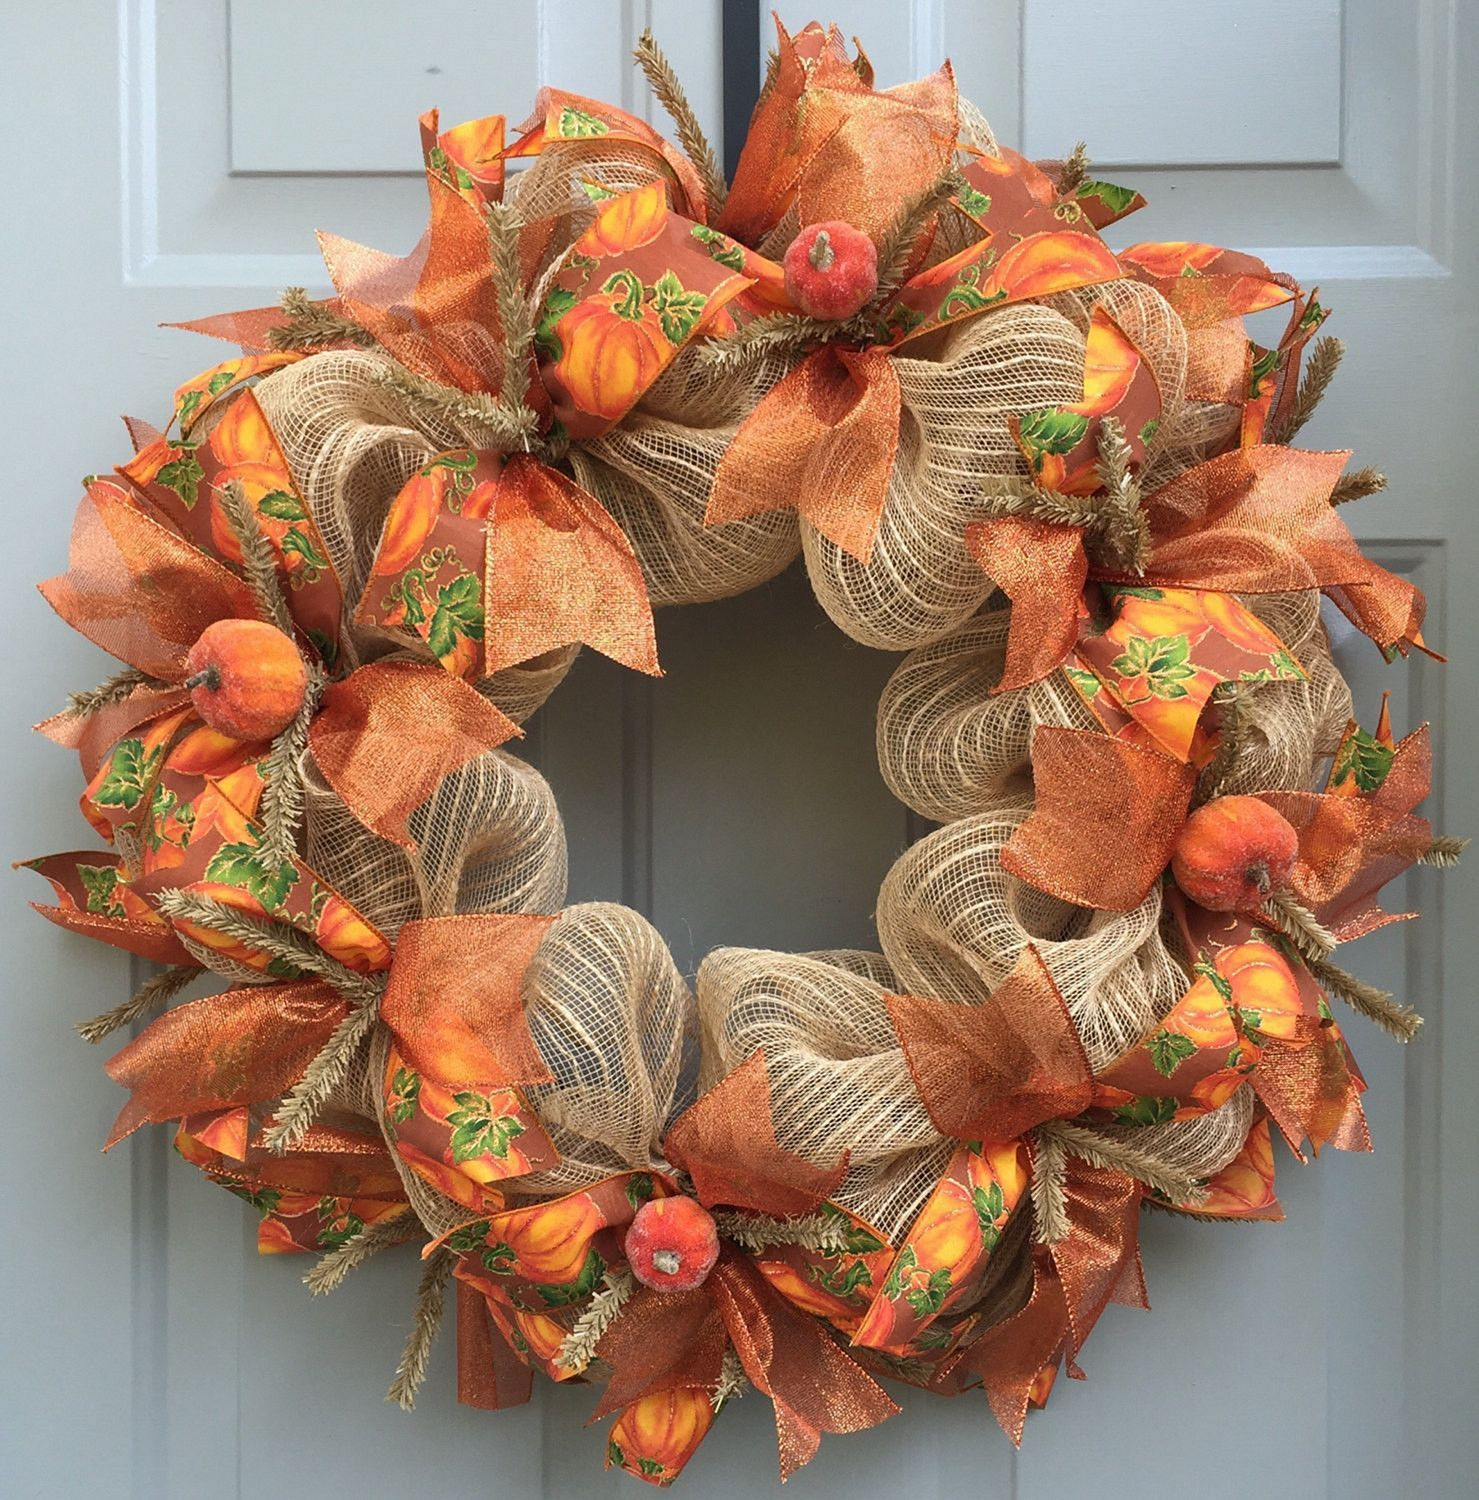 12 Easy Diy Deco Mesh Wreaths For Fall: Best Ideas To Create Fall Wreaths Diy 115 Handy